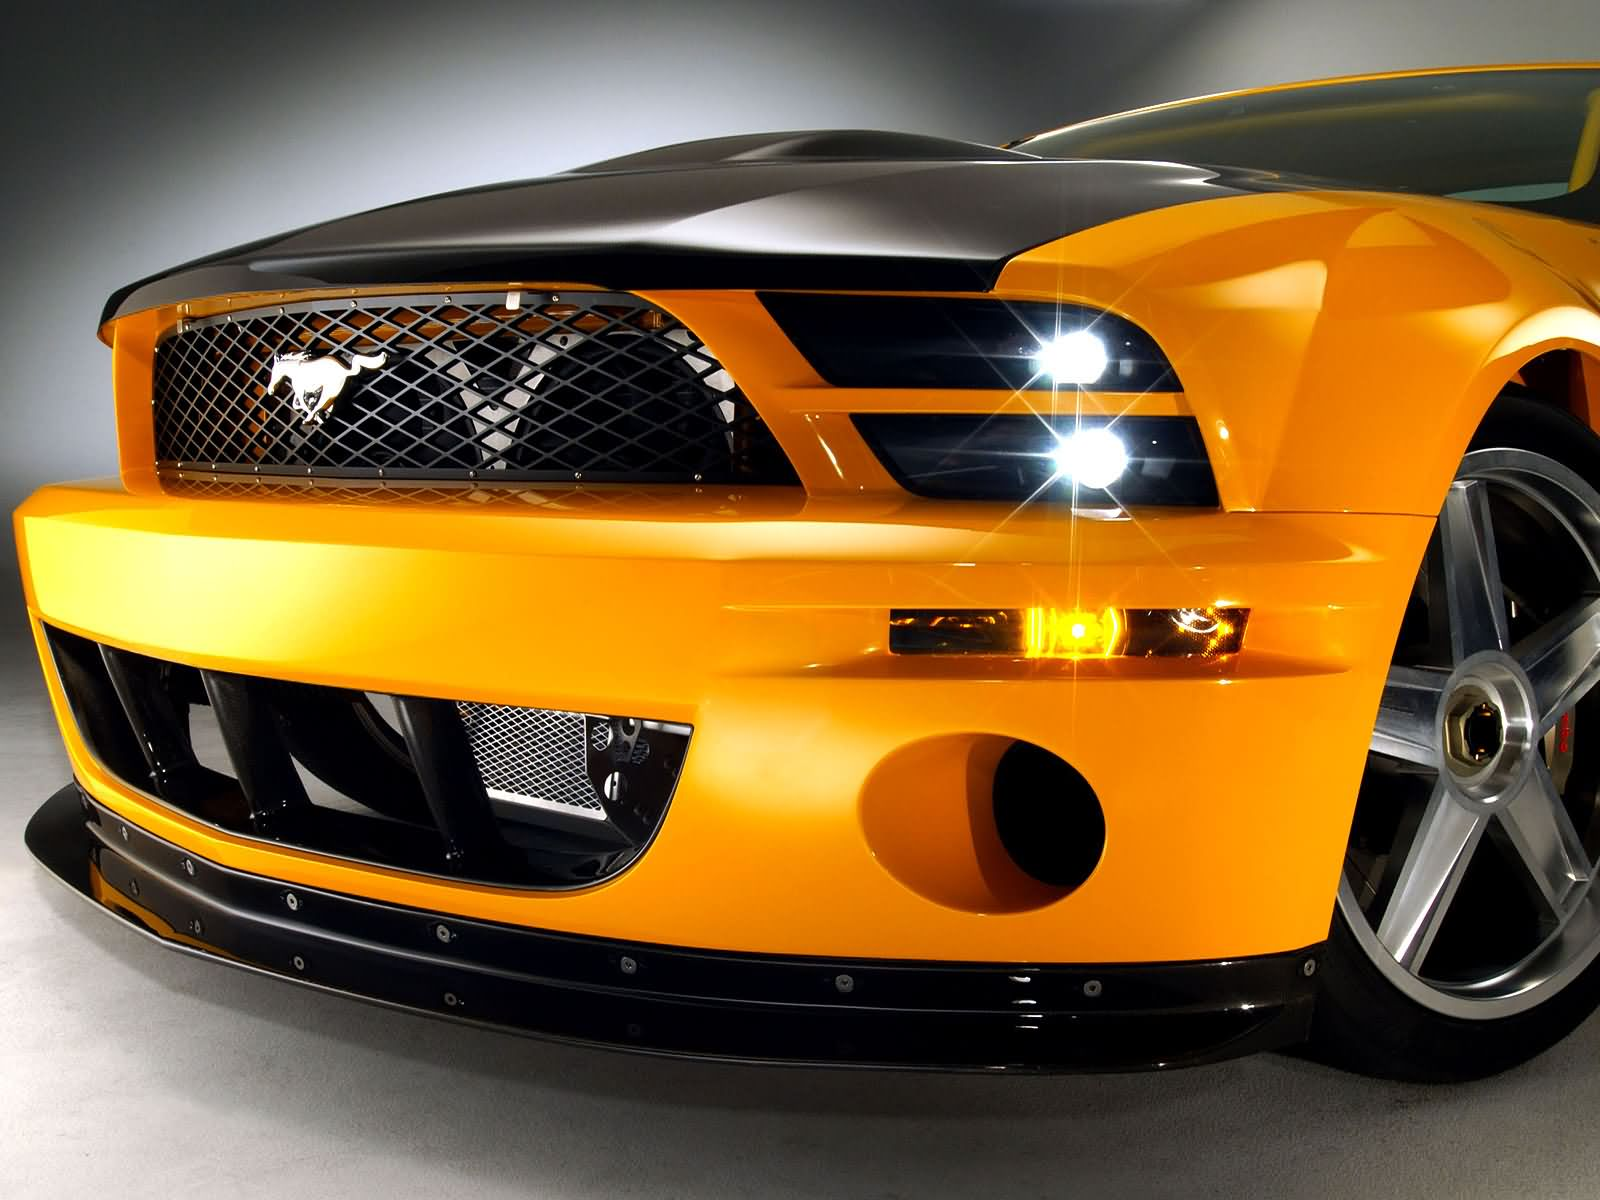 2016 ford gt orange with Imagenes Protectores De Pantalla De Anime Y Carros on Imagenes Protectores De Pantalla De Anime Y Carros furthermore Yellow Cars Depreciate The Least Study 1819725029 as well 1969 Ford Mustang Boss 429 Ar32774 moreover Adv1s Blue Devil Ford Mustang Is Demonically Cool as well Watch.